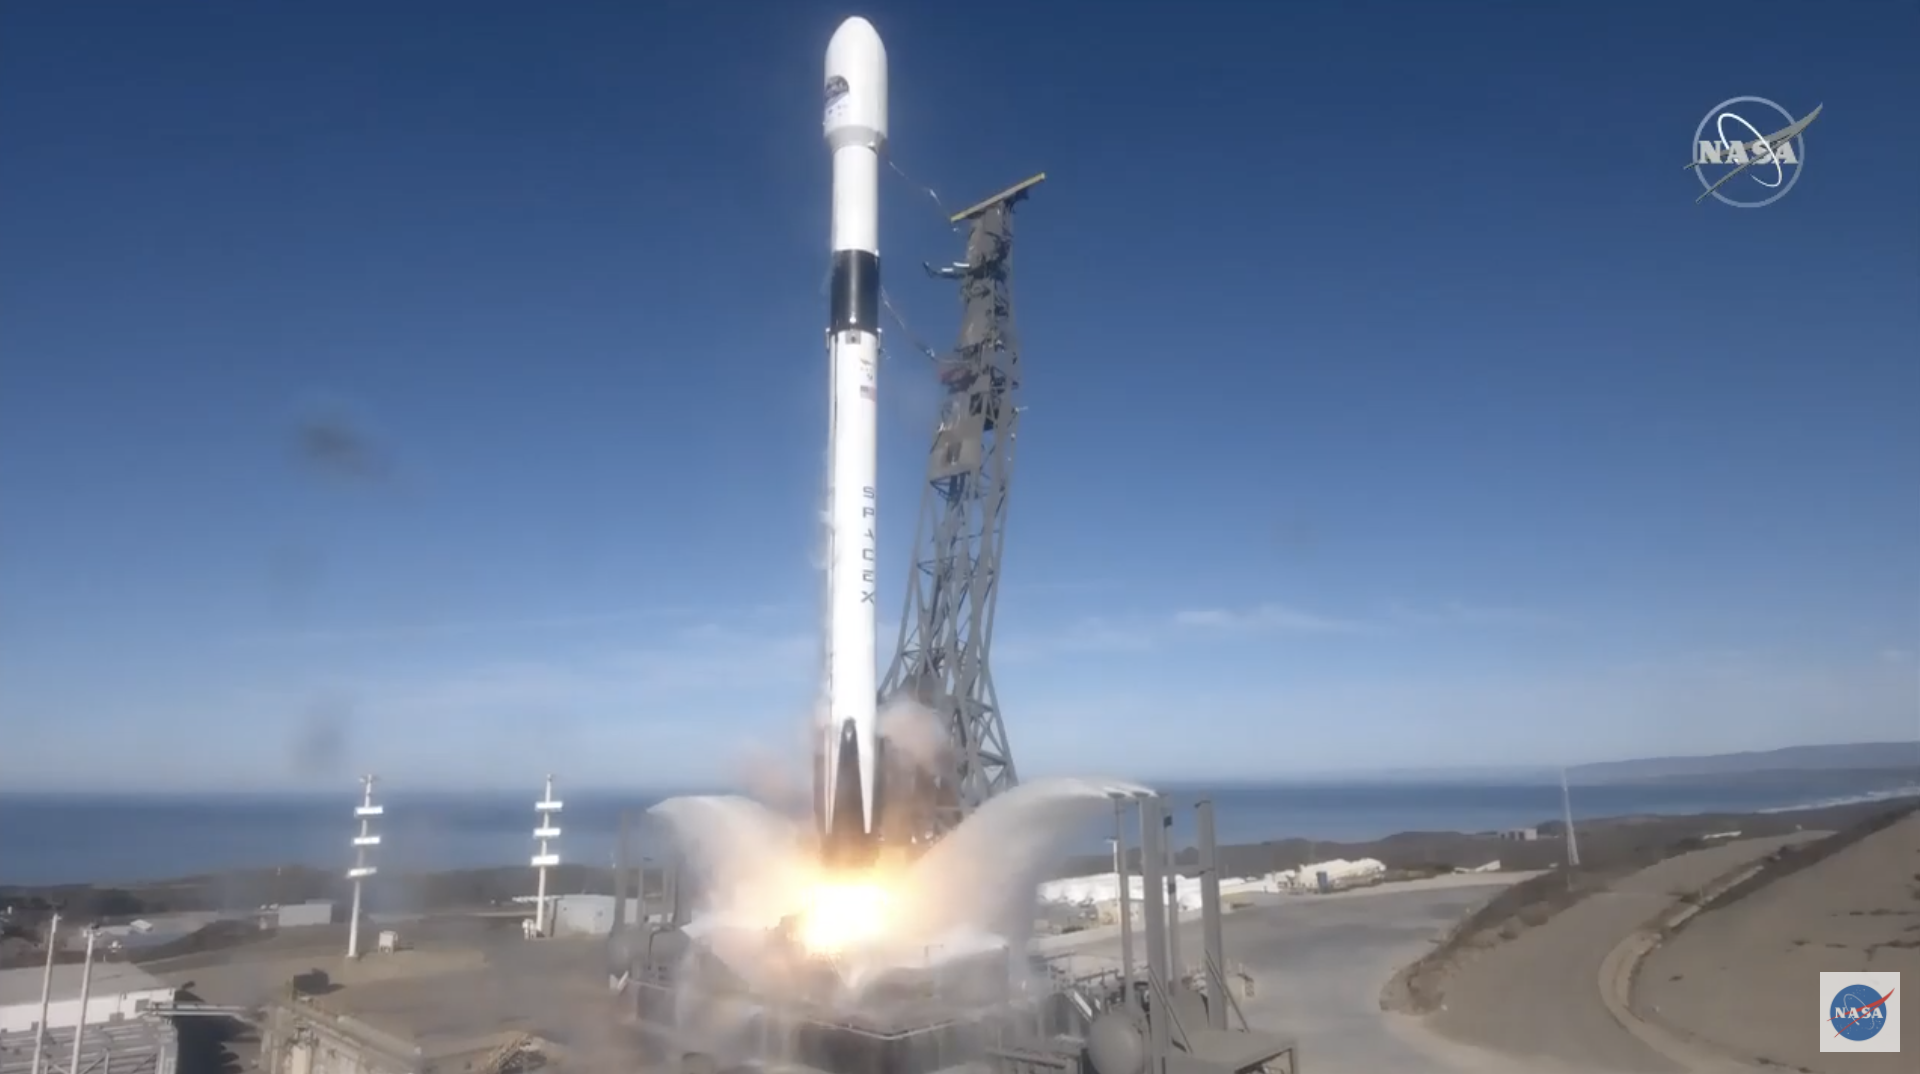 slide 1 - Sentinel-6 Michael Freilich launches on a Space X Falcon 9